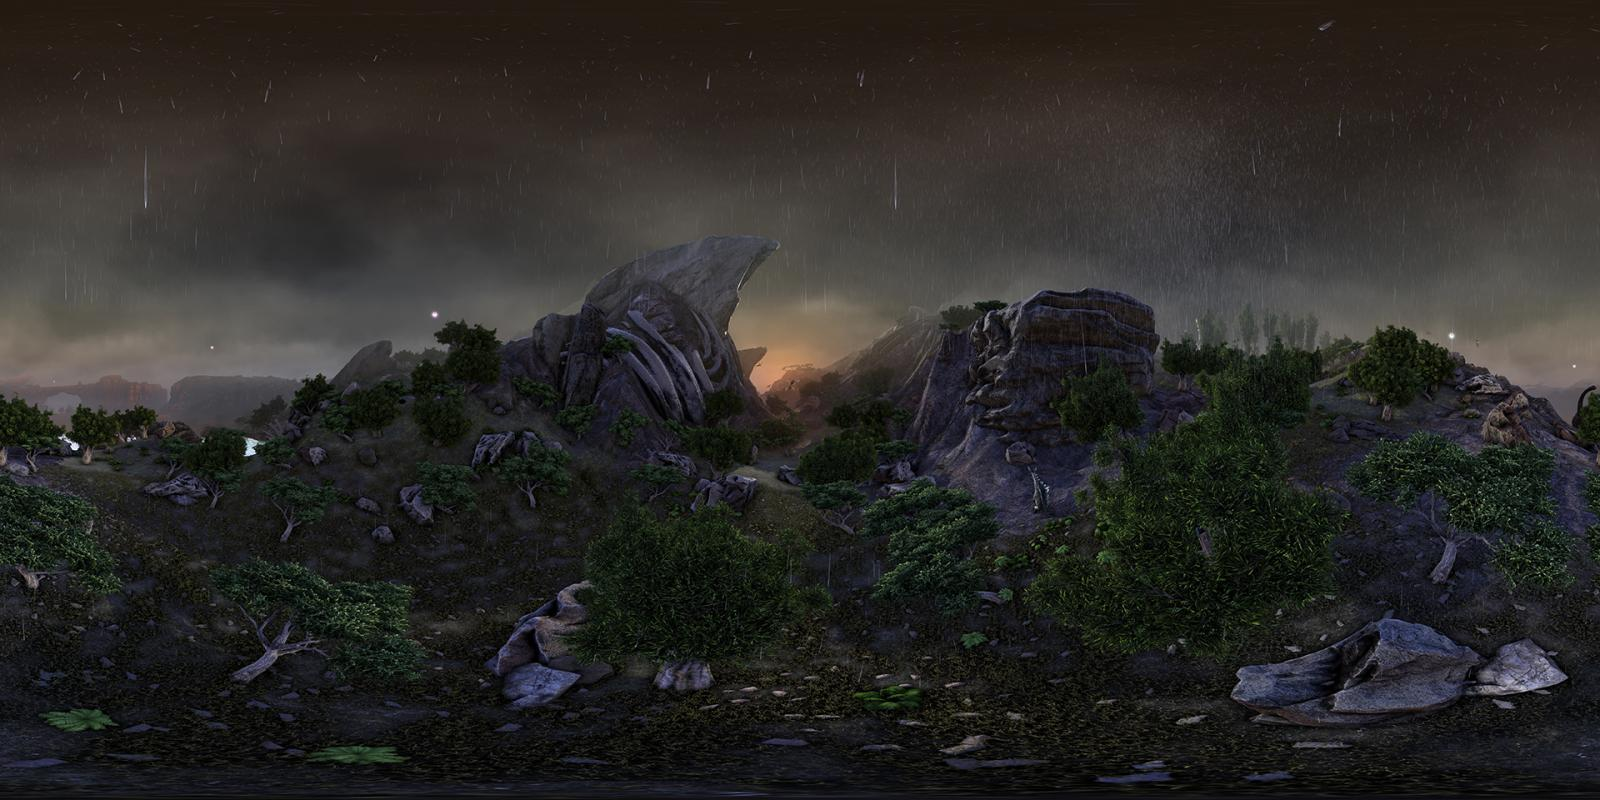 large.5a8b5fc01bb07_roguewolf91-Downpour-Panoramic360Stereoscopic3D.jpg